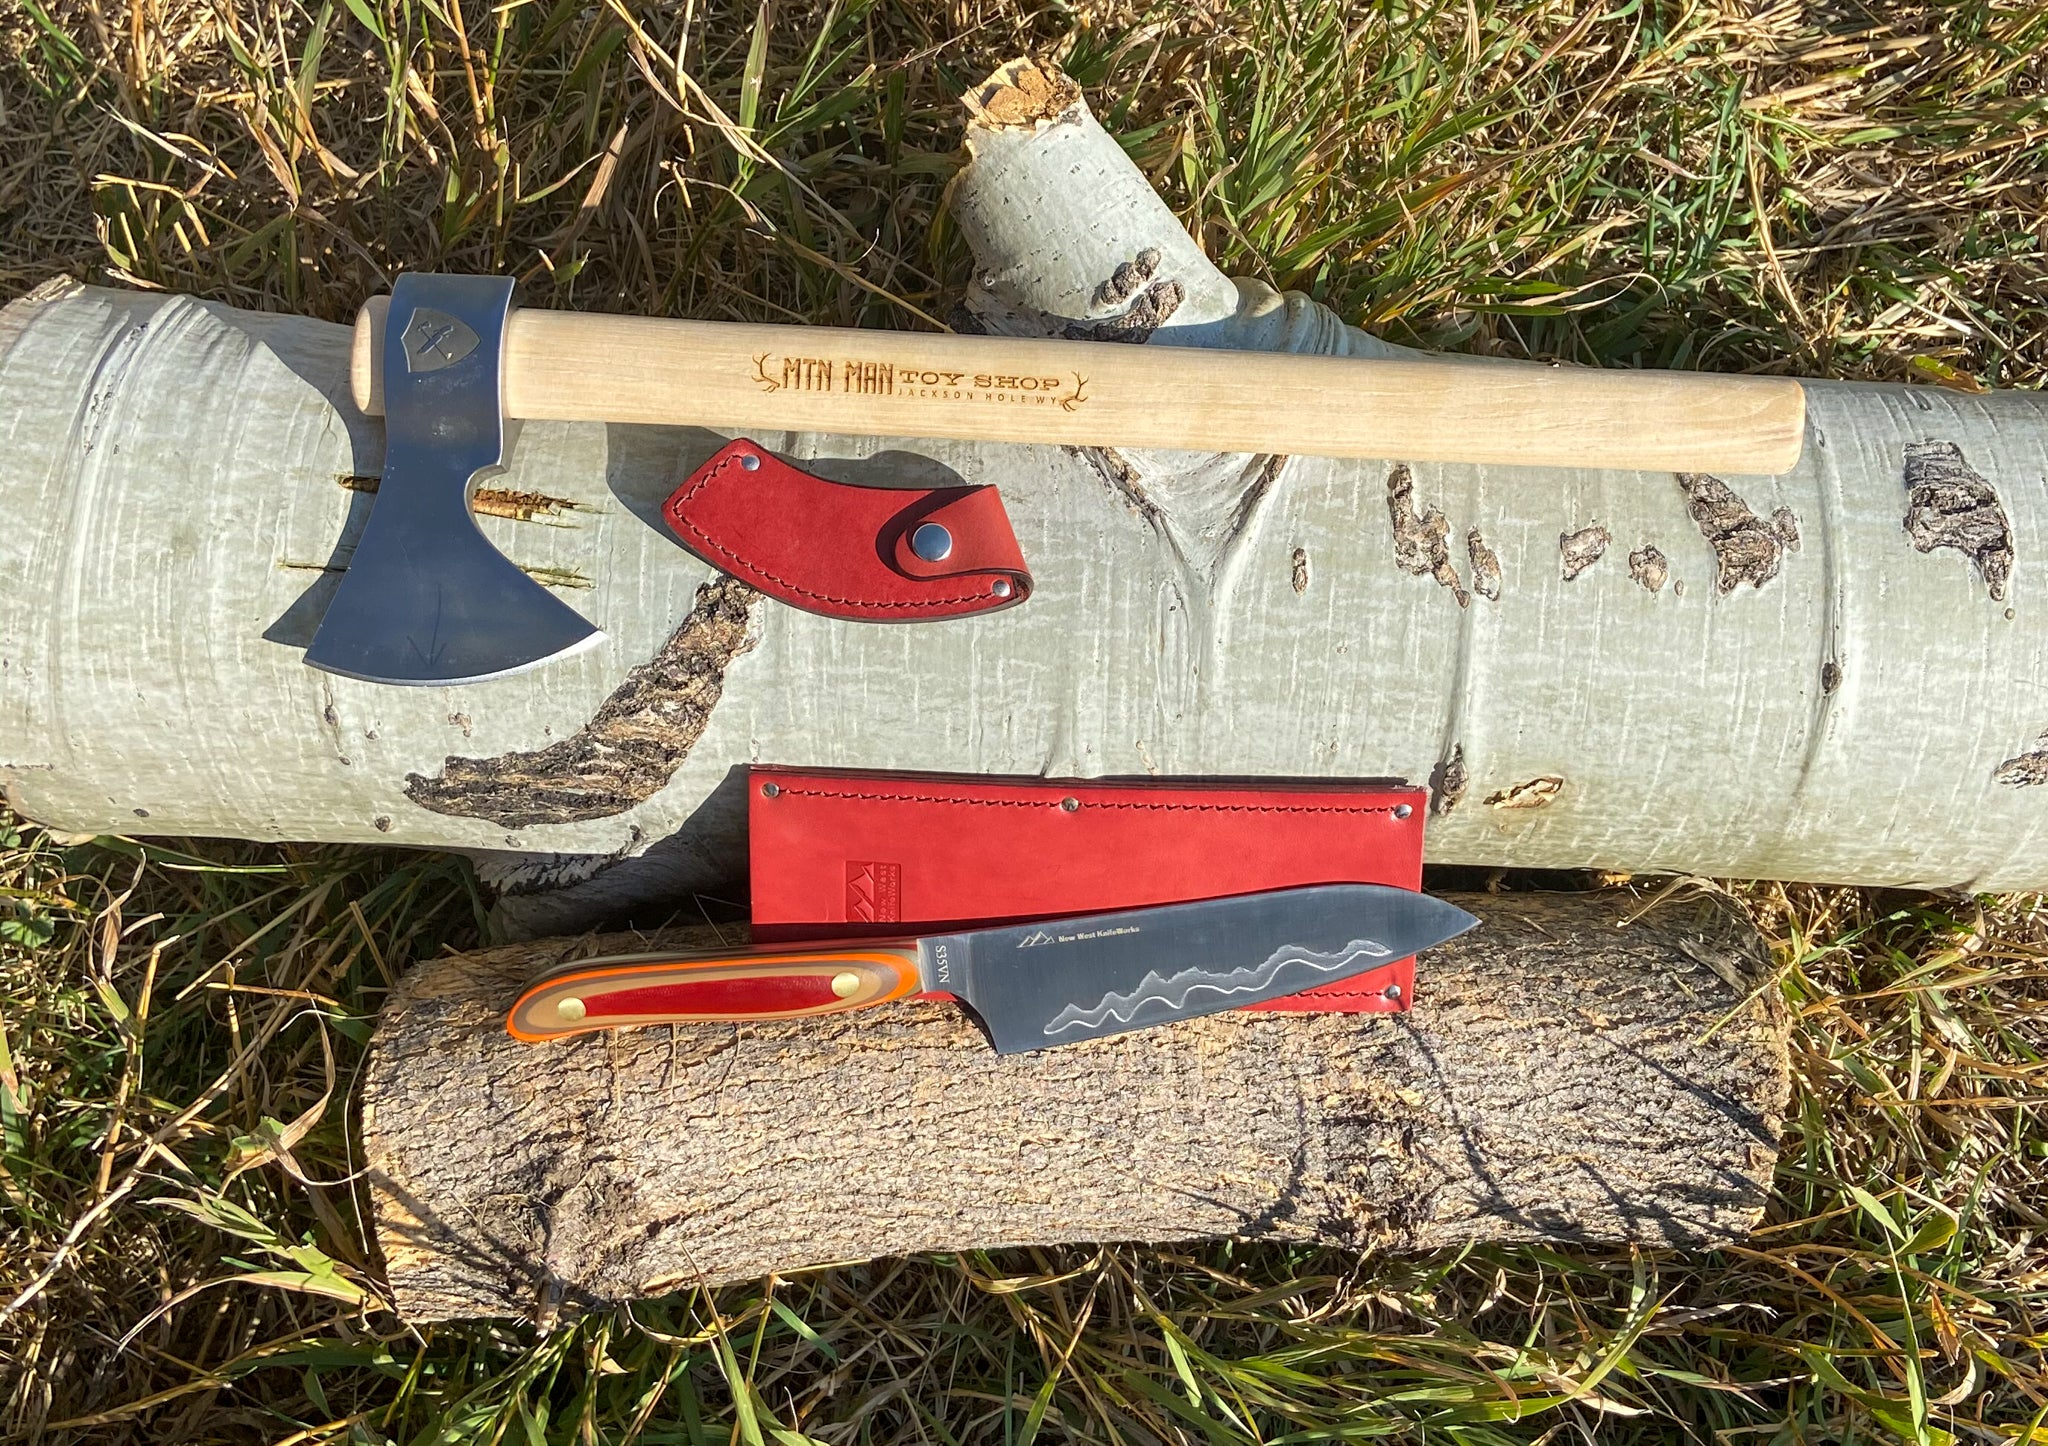 Sunset Magazine Top Knives for Camping